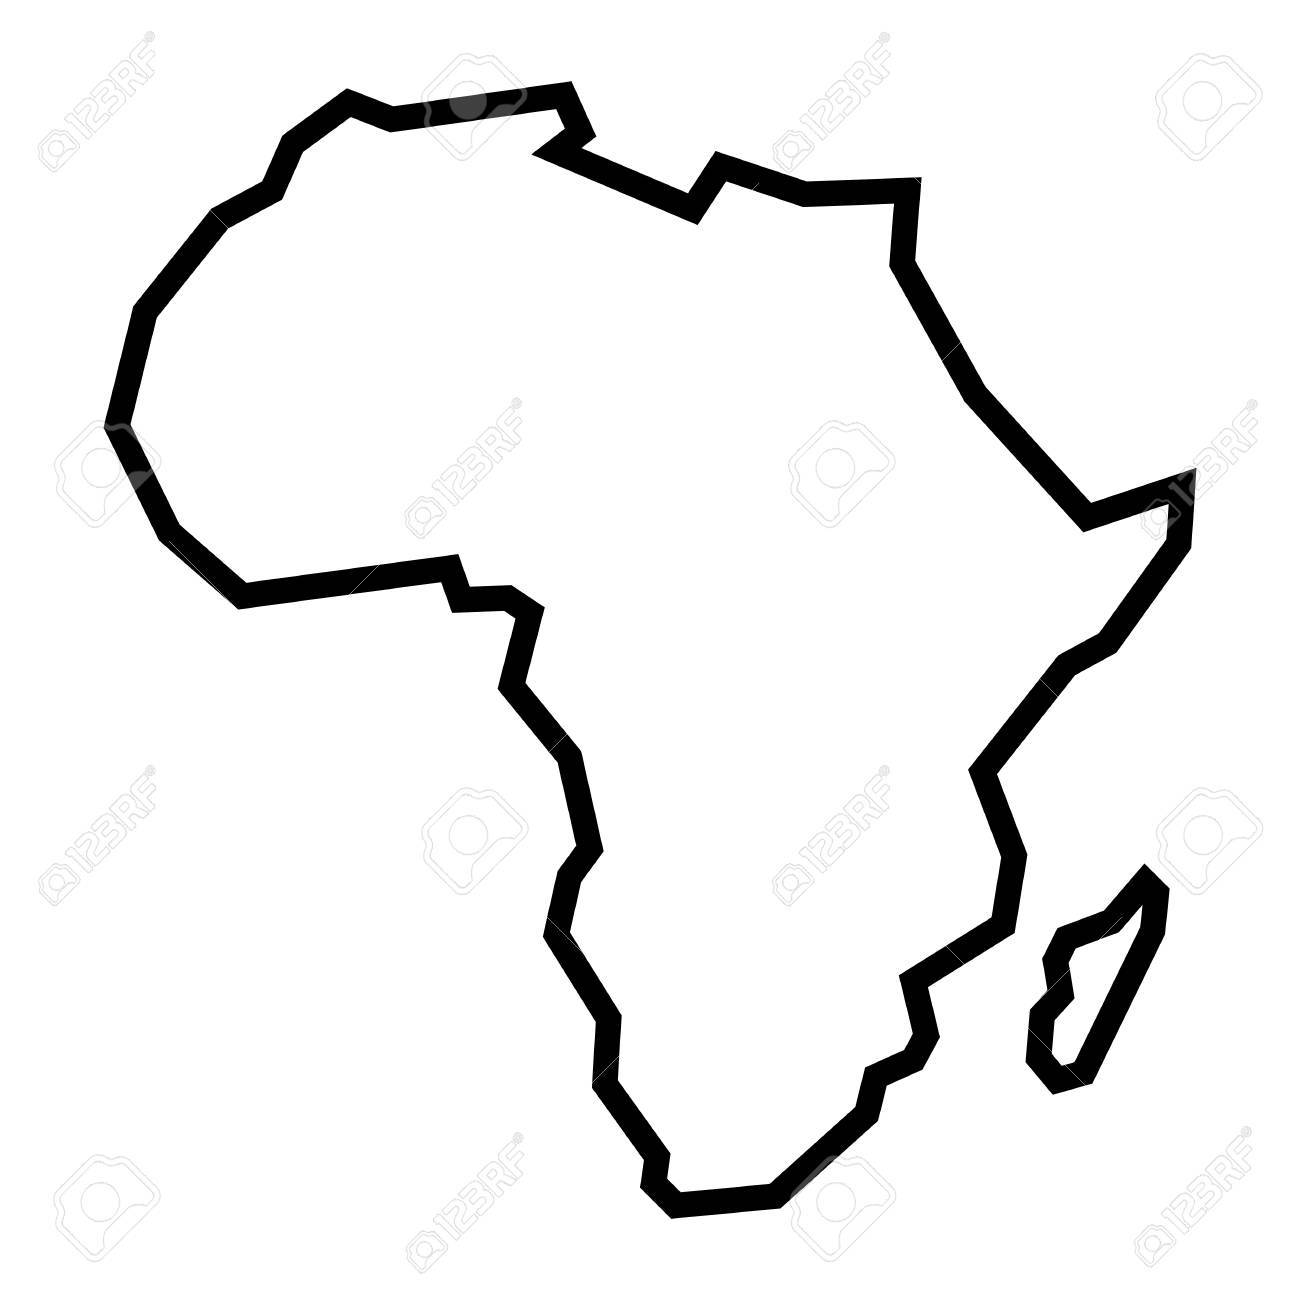 African Continent Drawing At Getdrawings